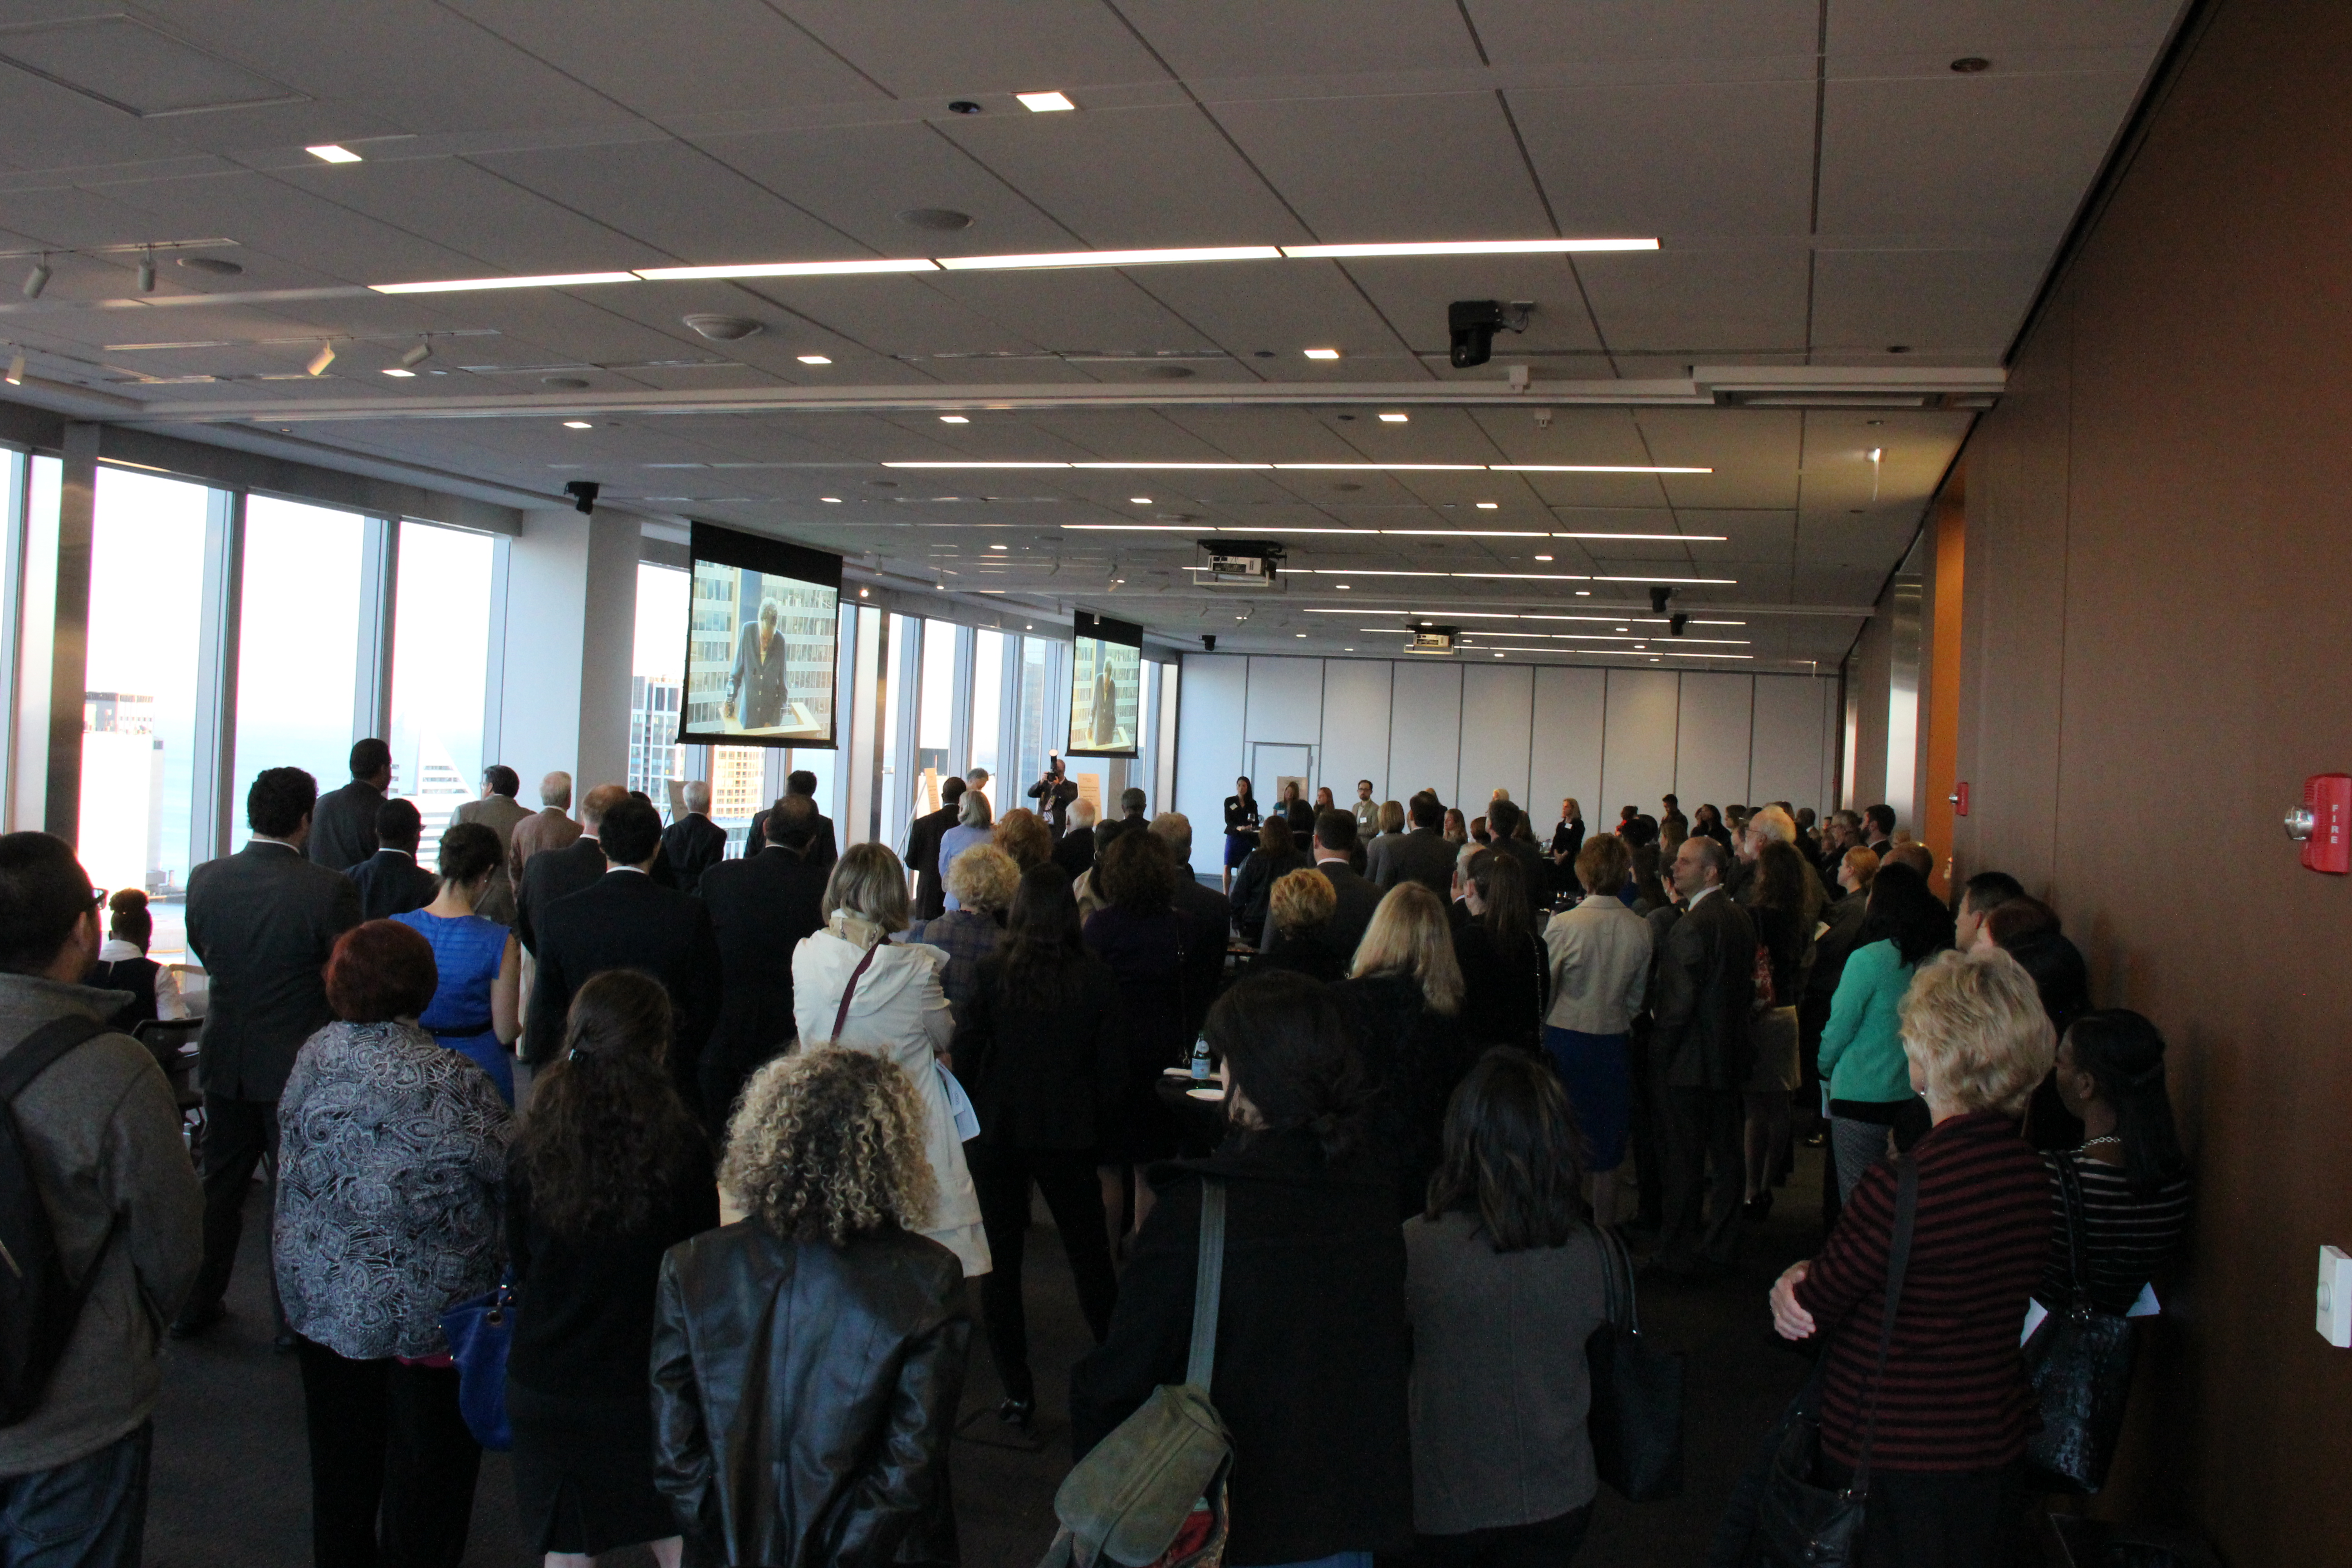 Lots of people came to honor Jeffrey Colman & Toni Preckwinkle